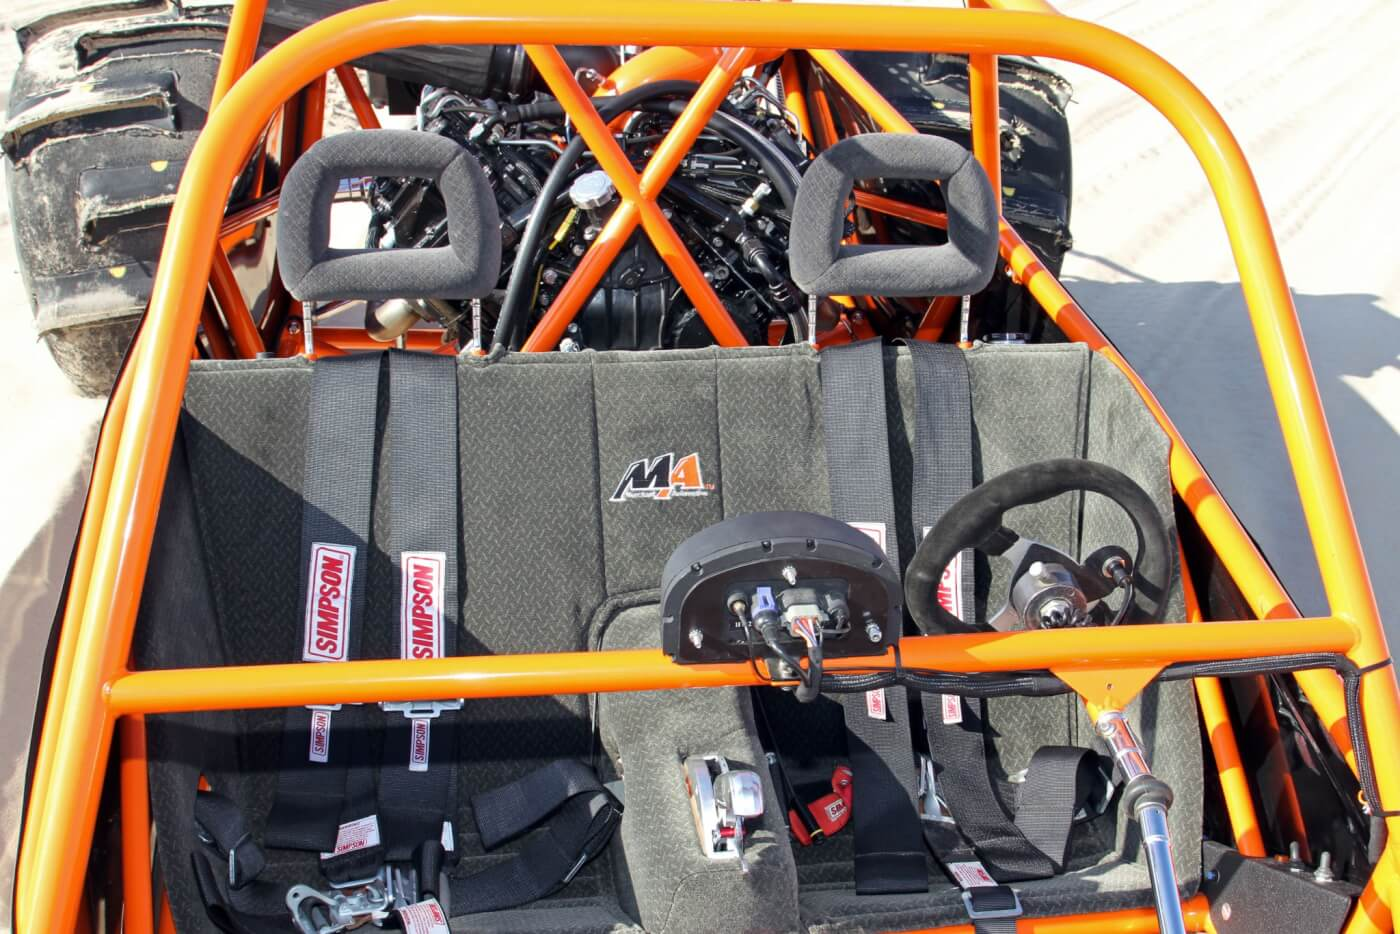 The cockpit's sparse and built for racing but comes complete with Simpson 5-point harnesses to hold the driver and passenger securely into the custom formed aluminum seat.